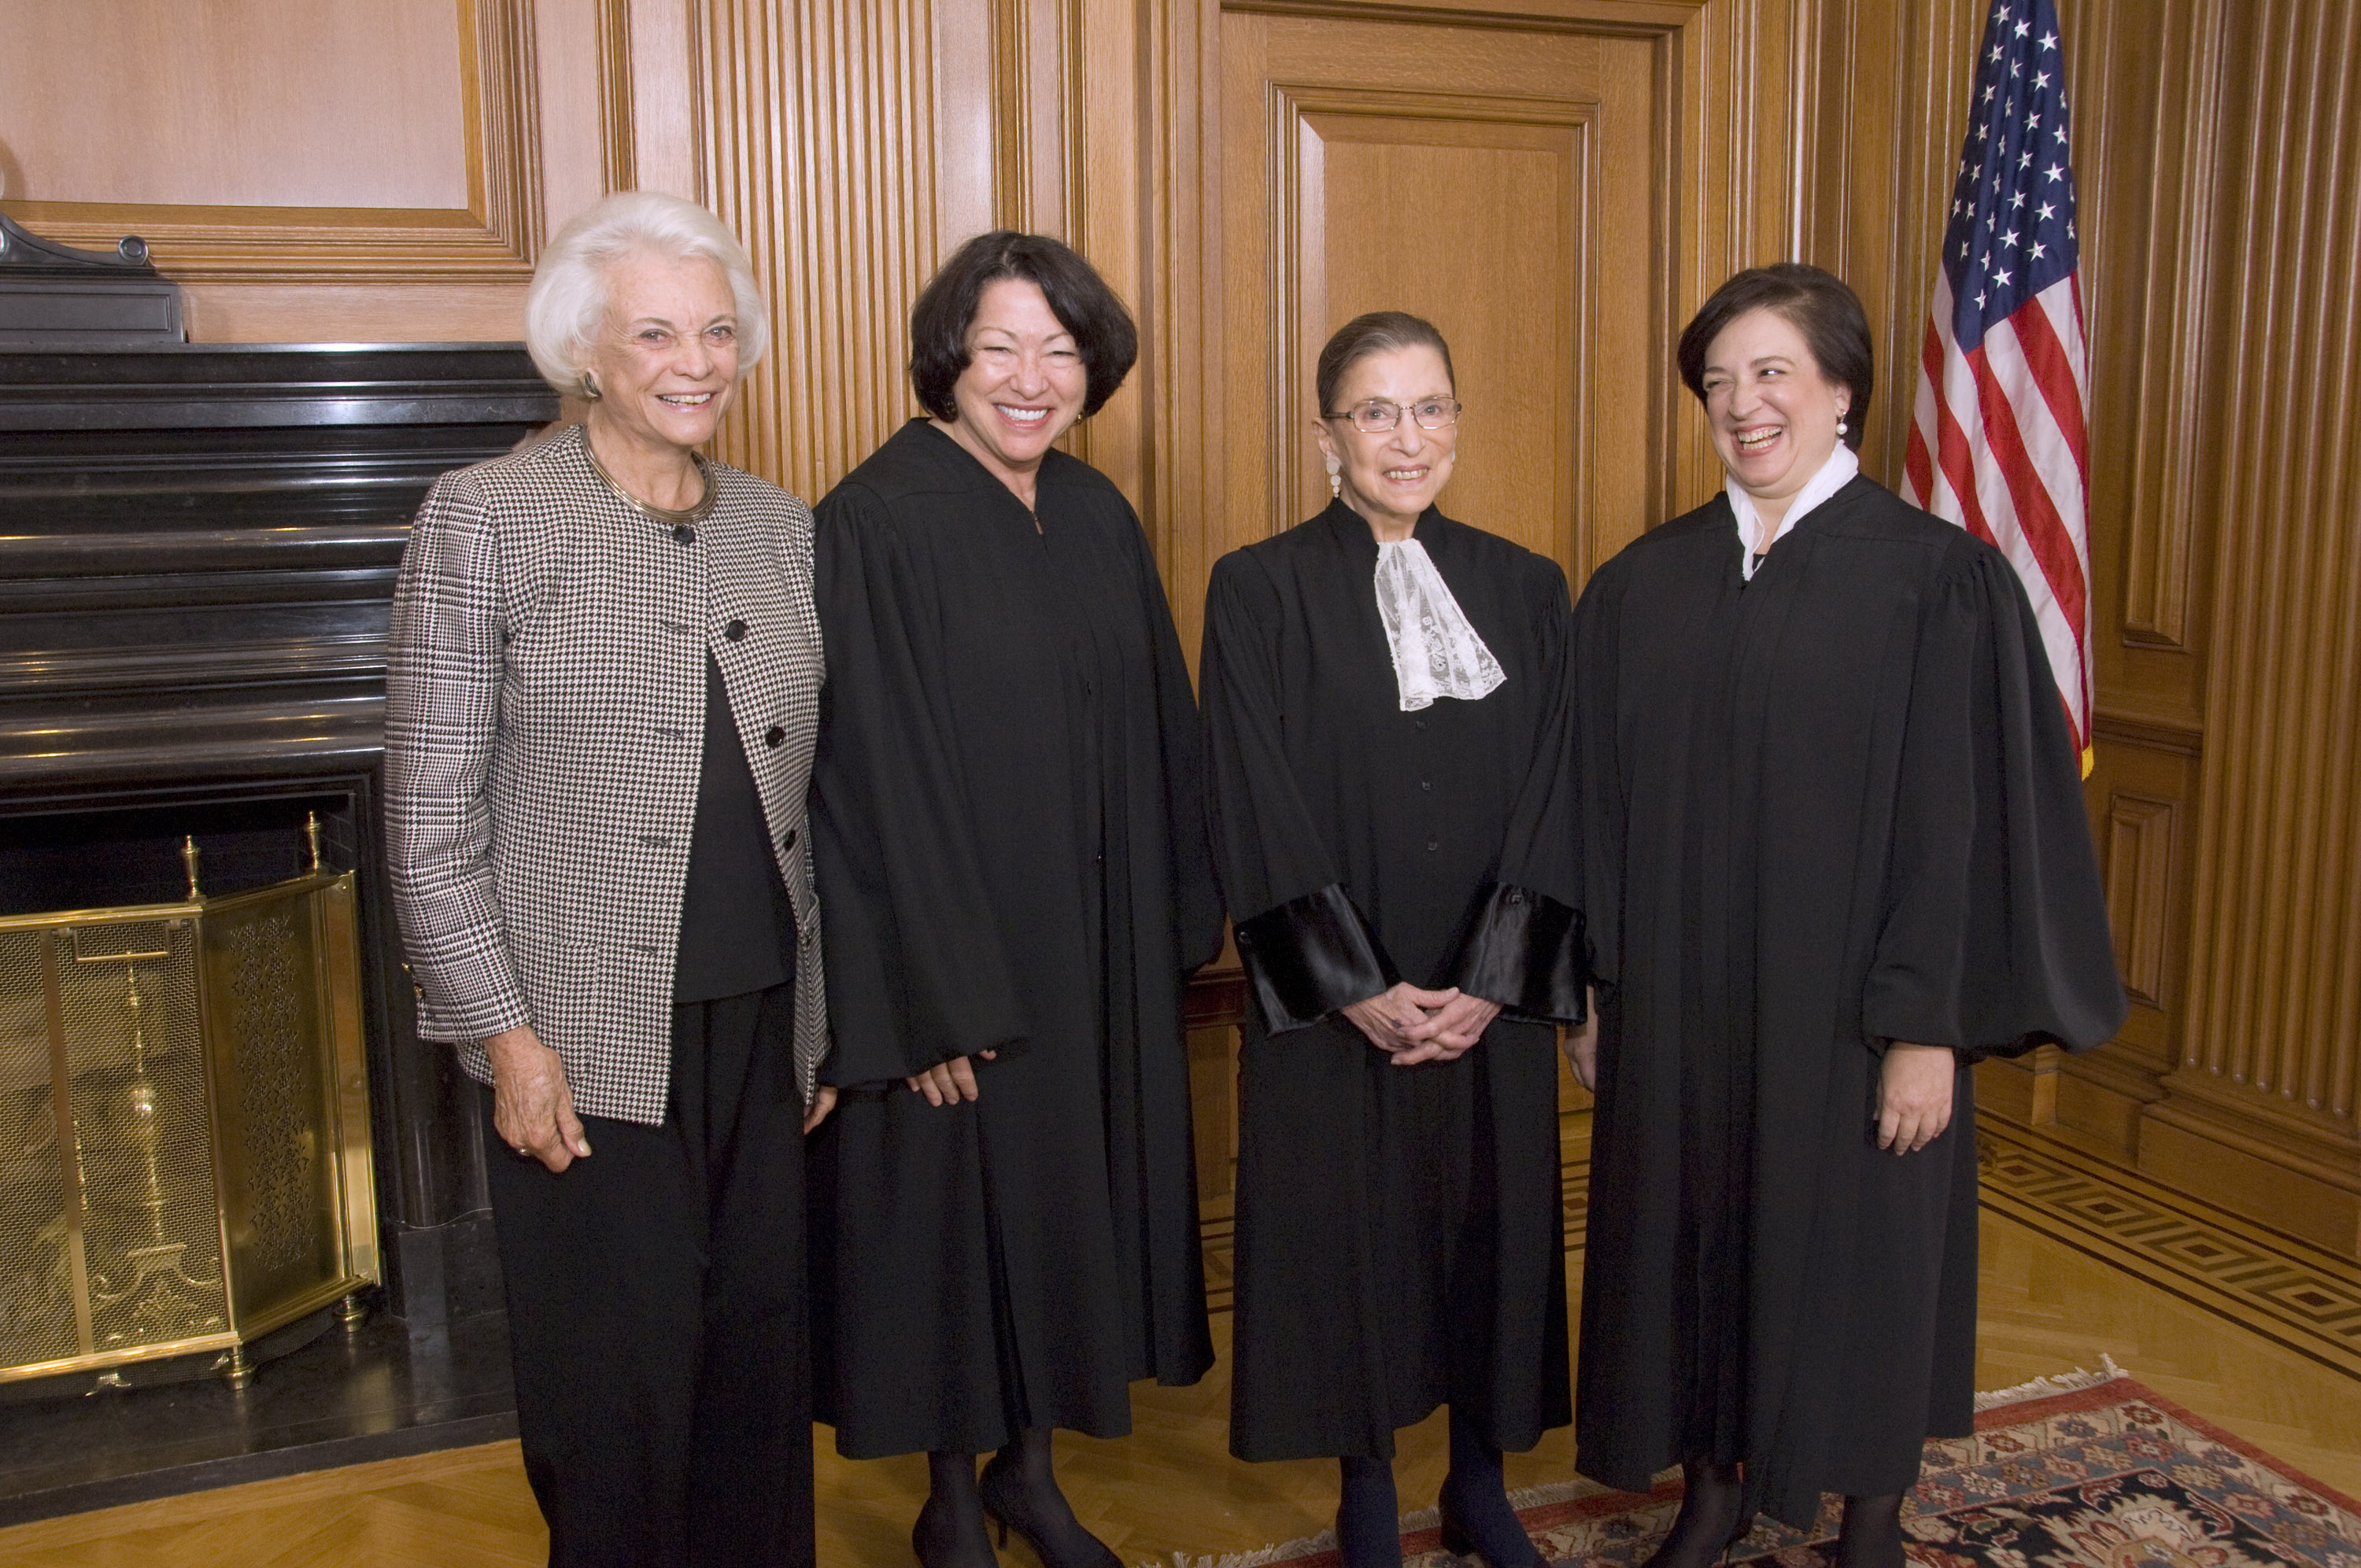 Female Justices